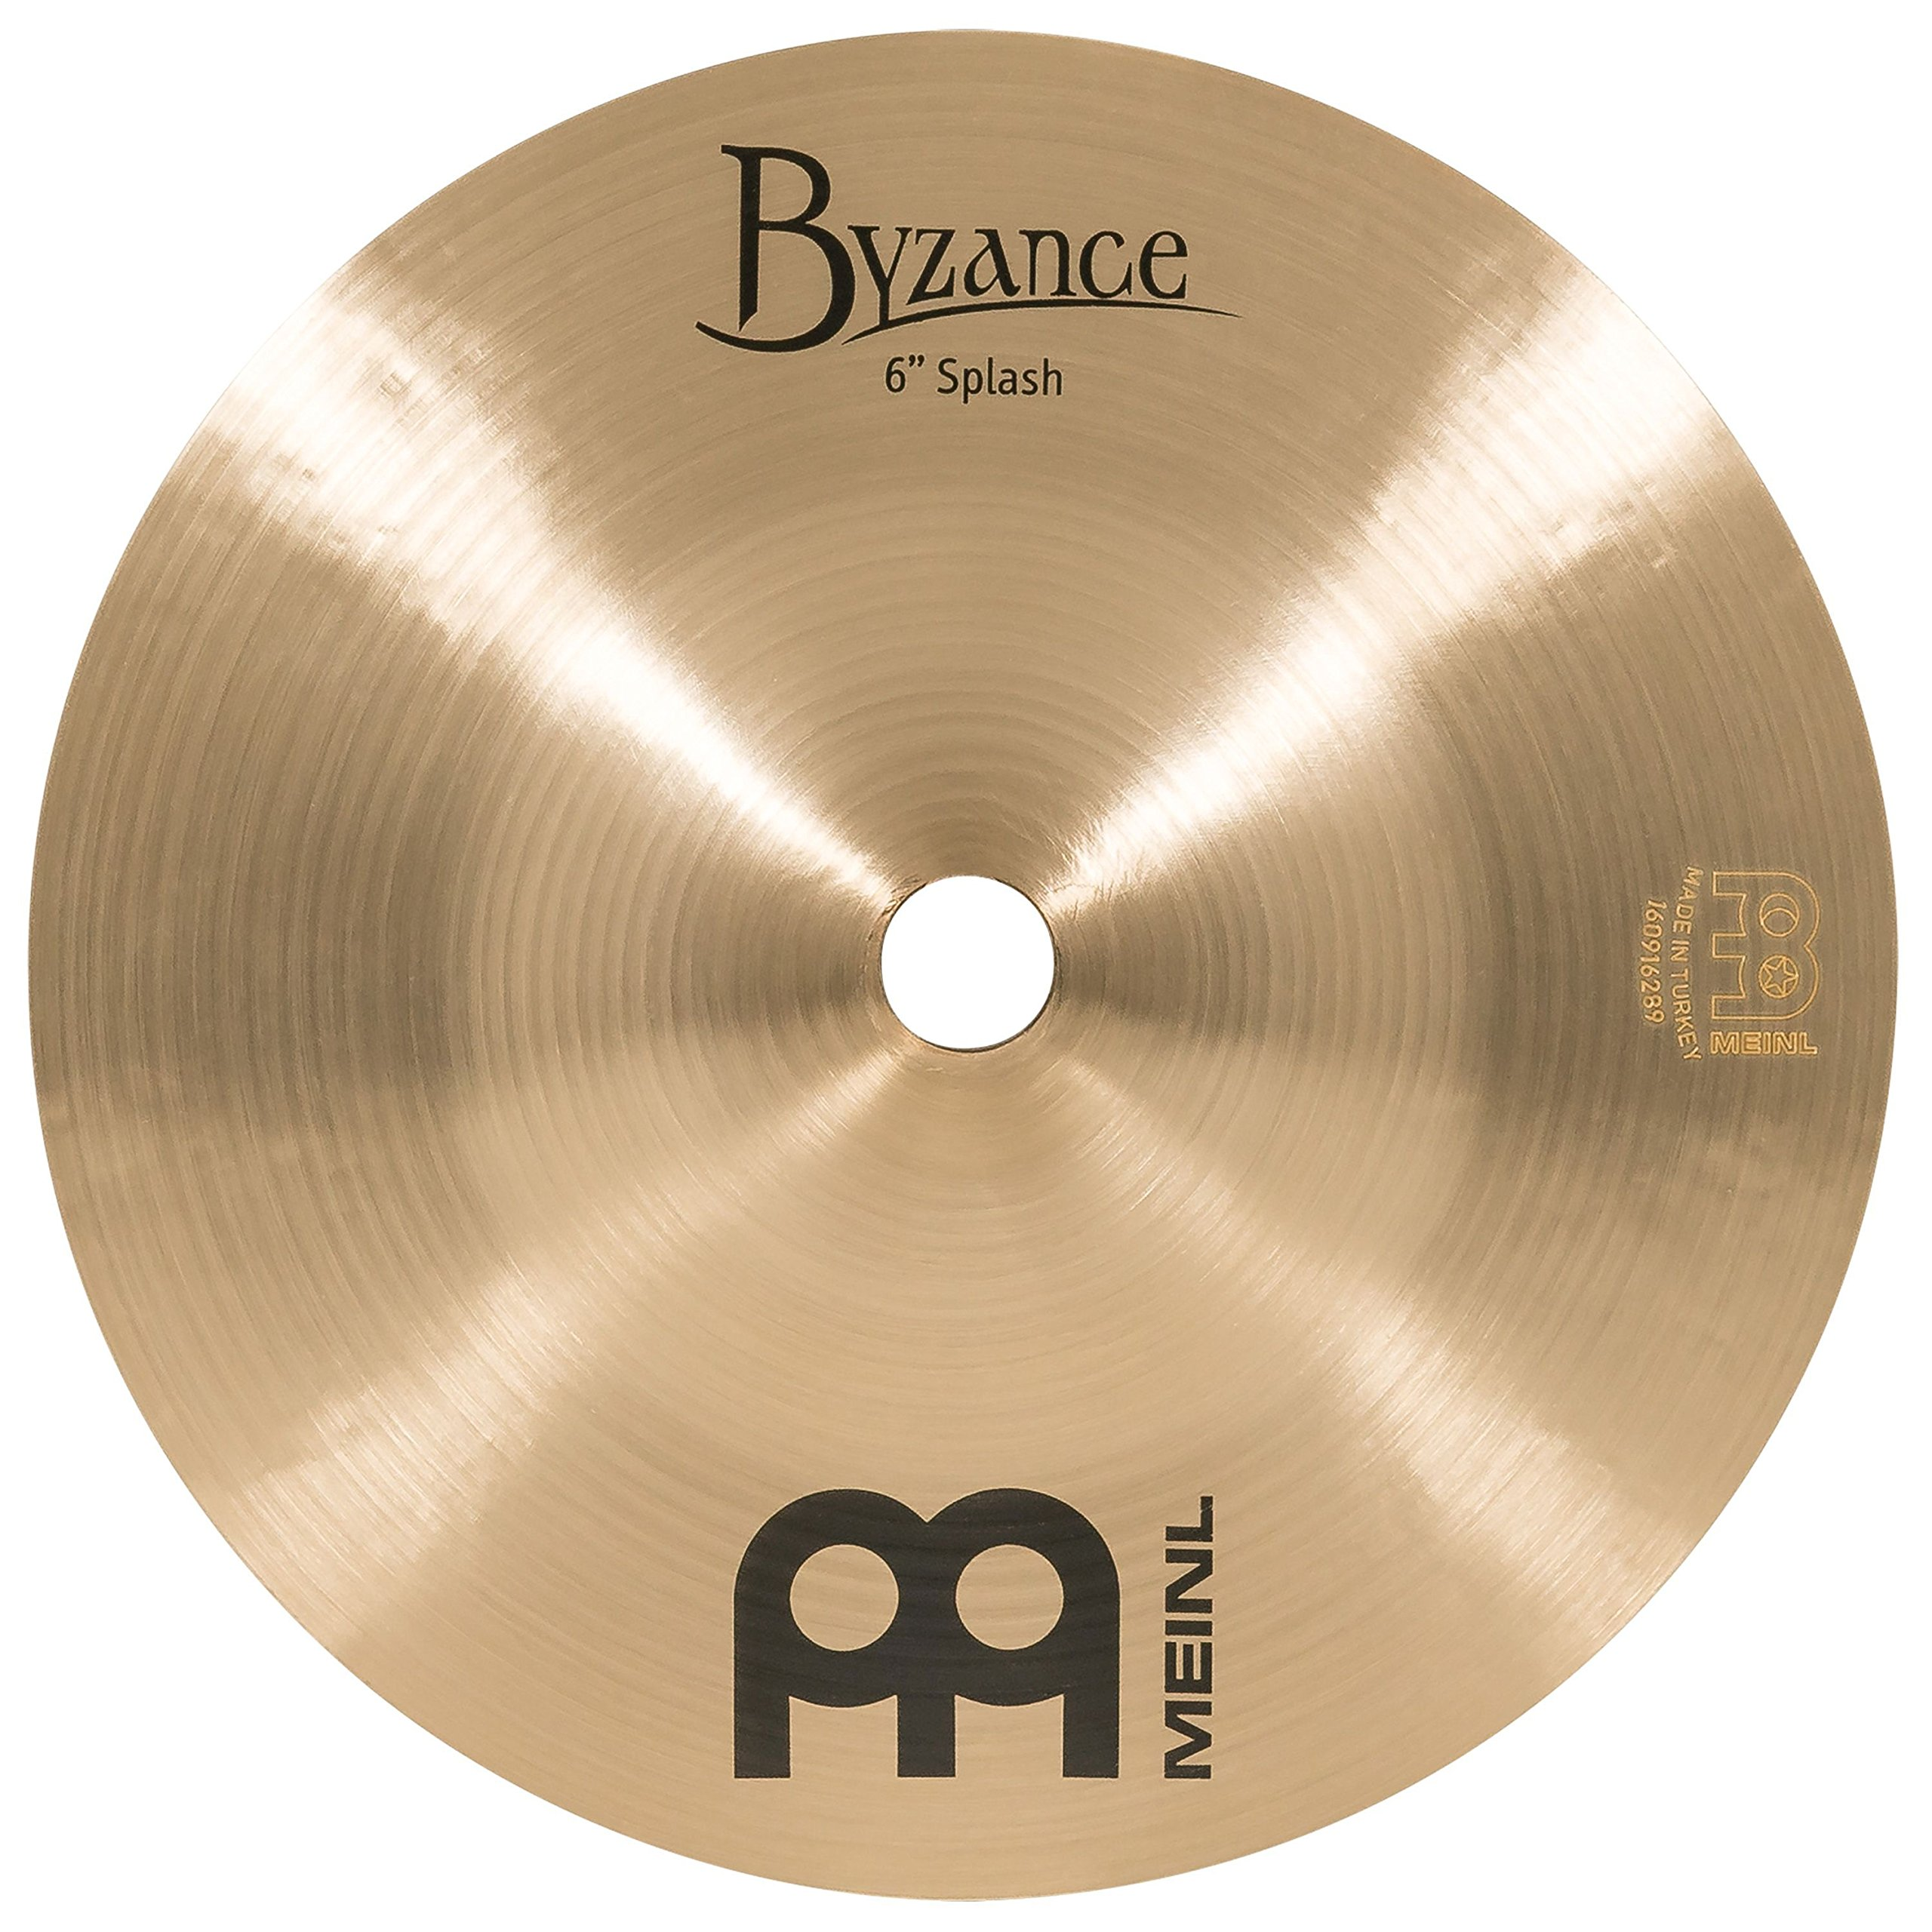 Meinl Cymbals B6S Byzance 6-Inch Traditional Splash Cymbal (VIDEO) by Meinl Cymbals